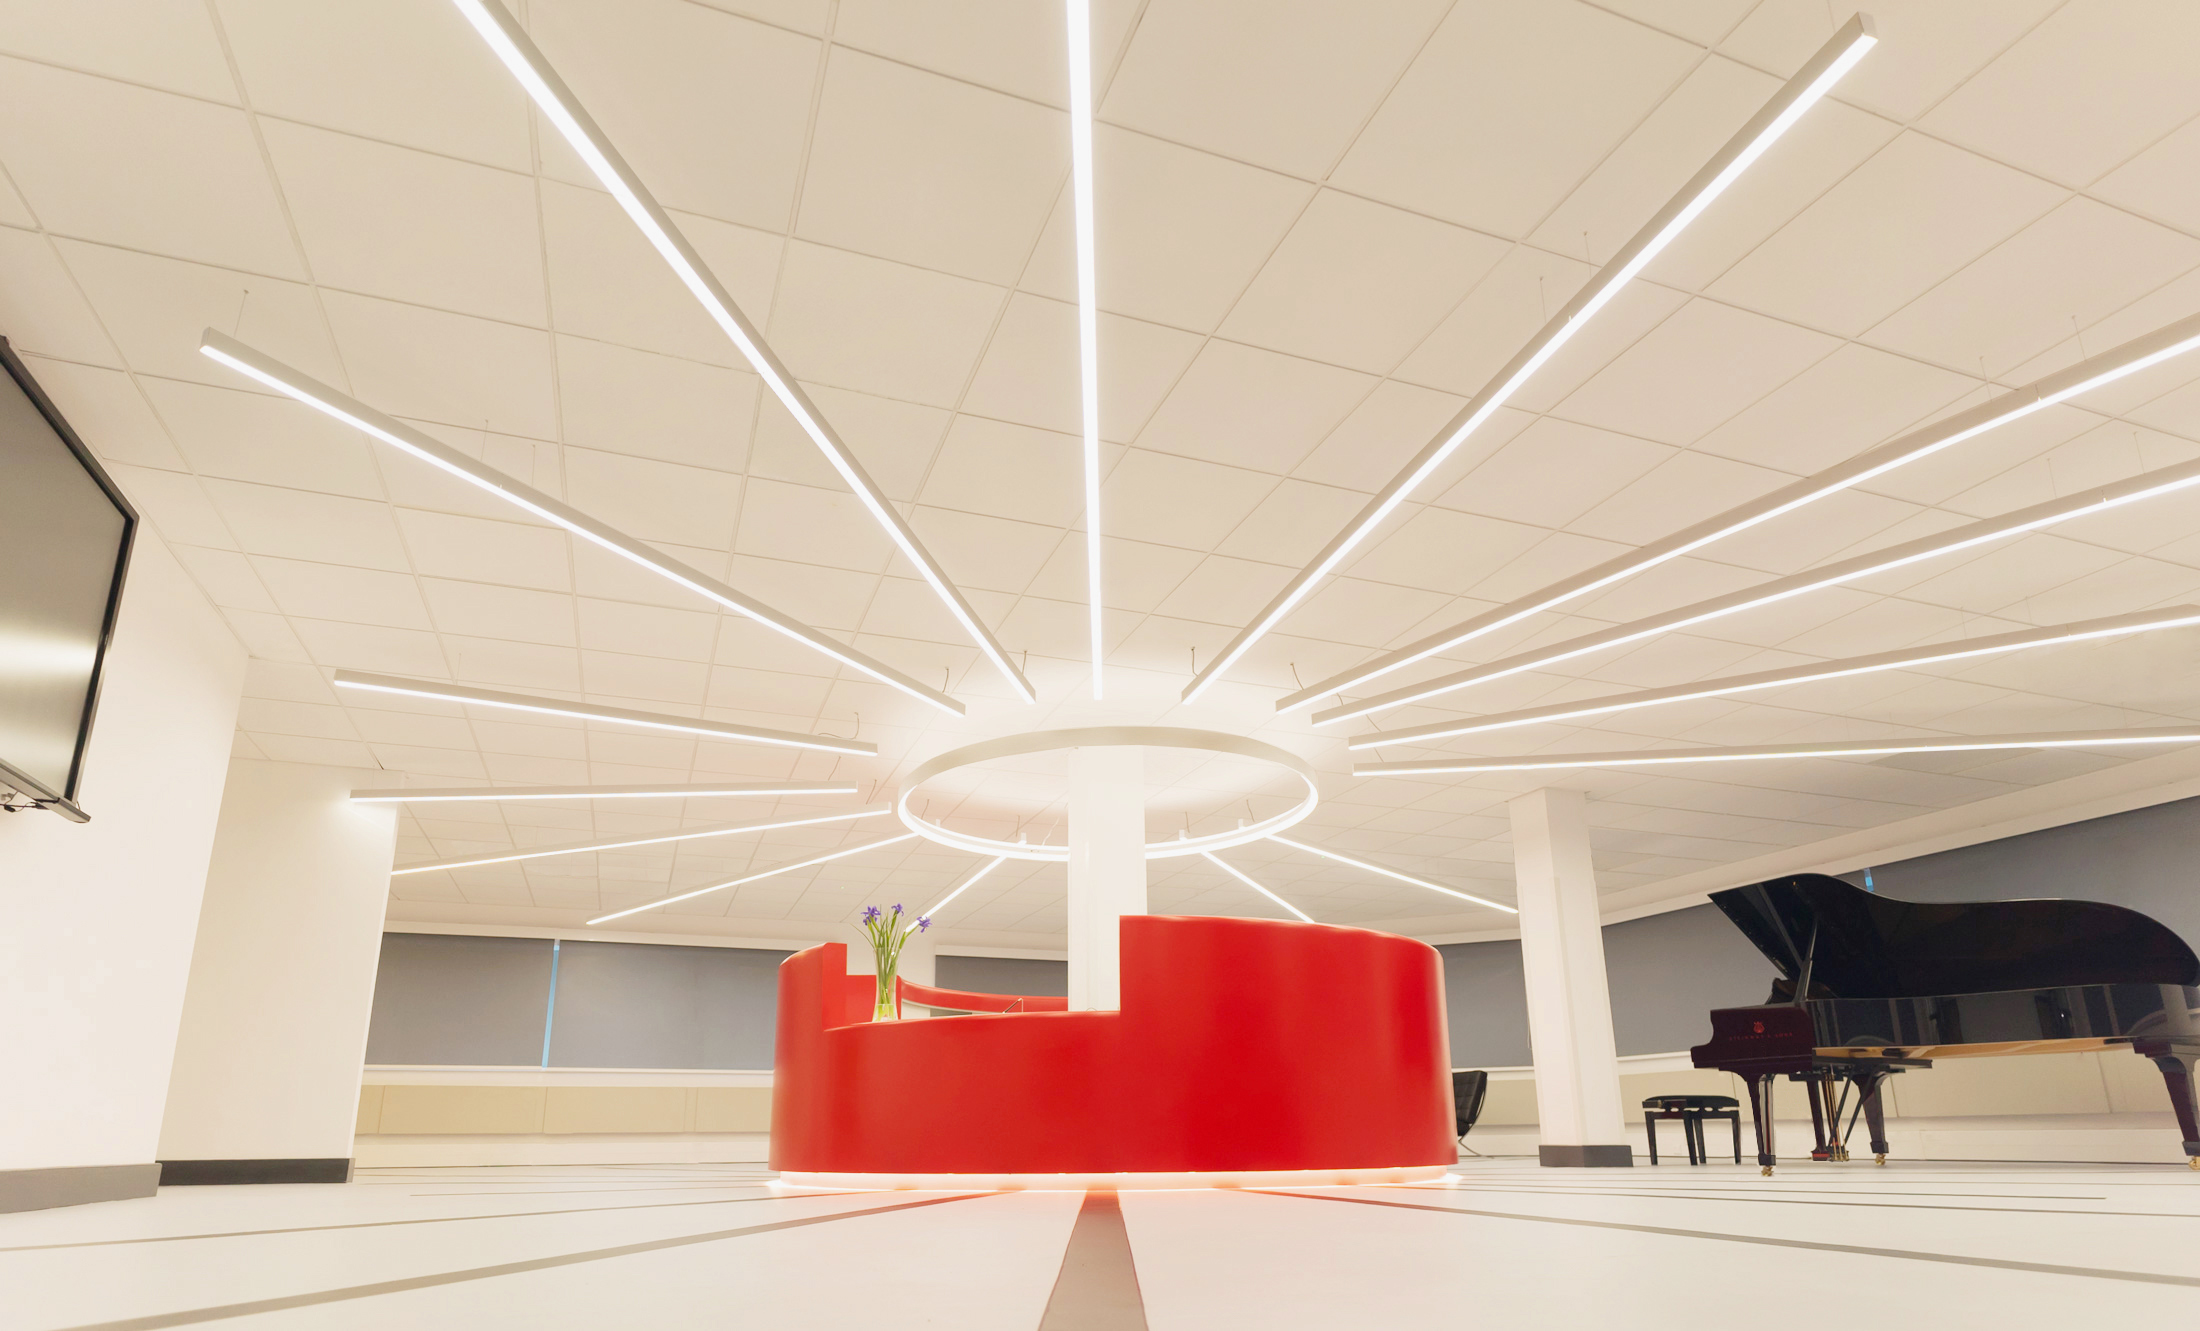 SPECTACULAR SUN DESIGN. - The spectacular 'sun' design of the reception island required a full lighting design and lux level calculation in order to ensure correct light levels and smooth dimming was achieved.